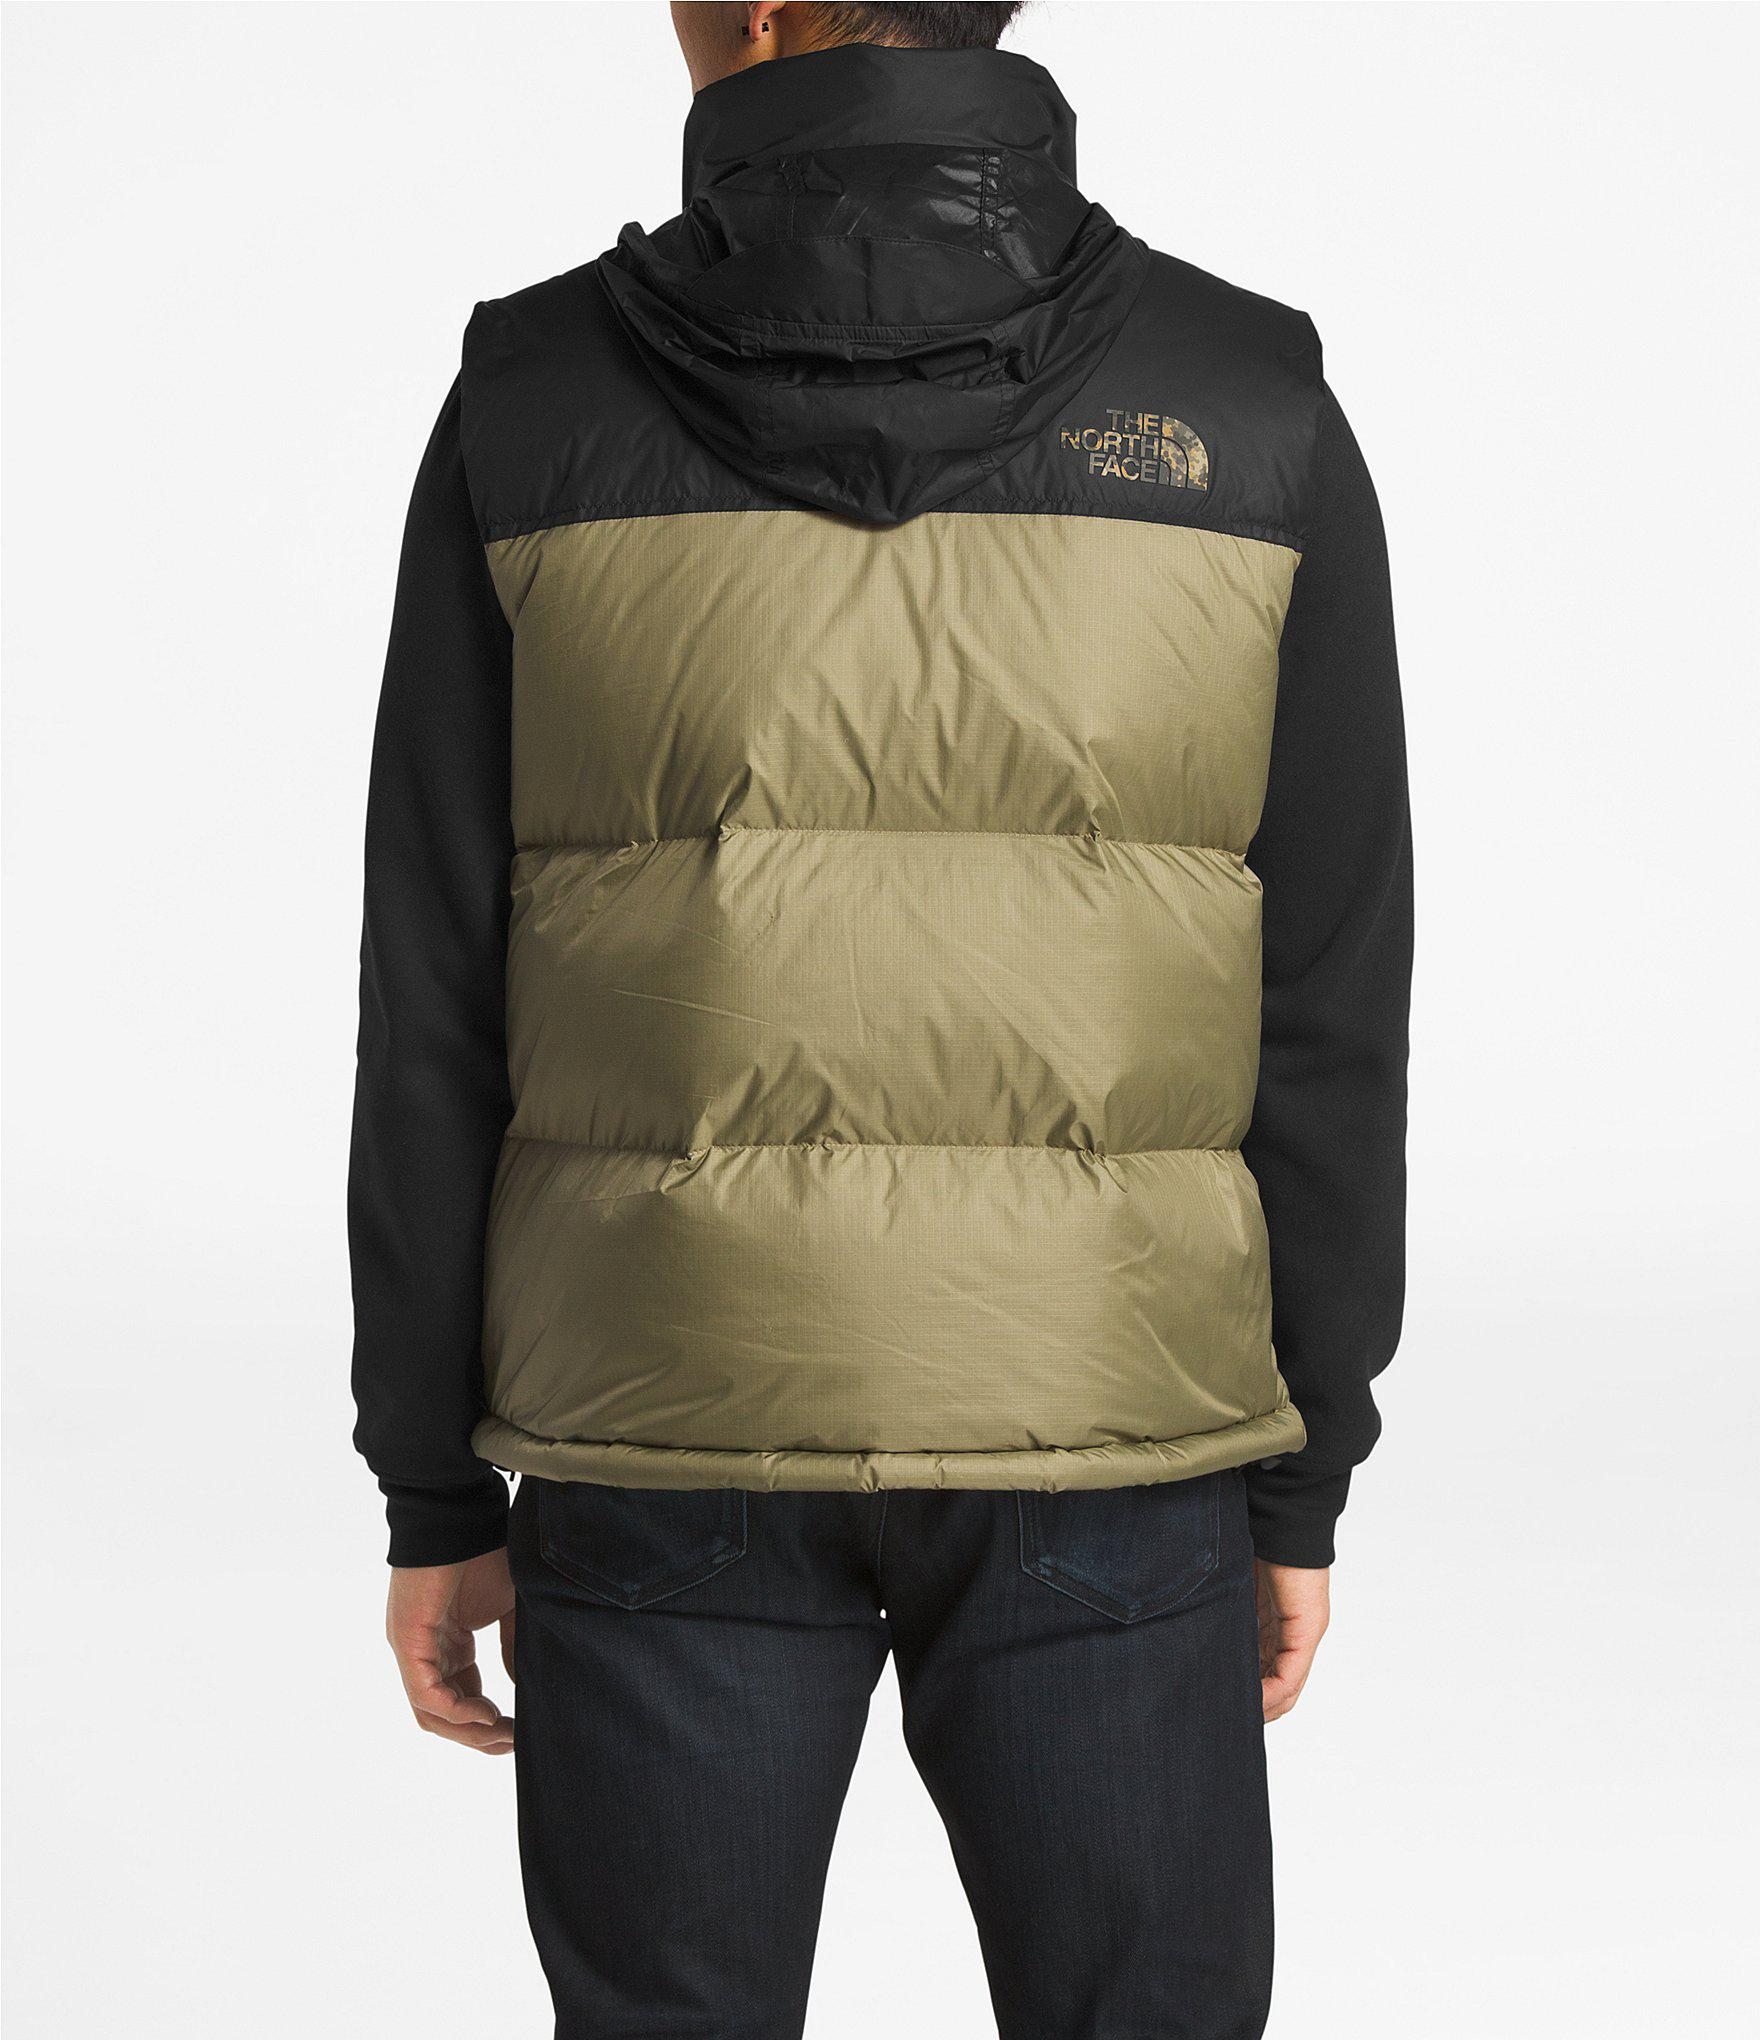 The North Face - Green 1996 Retro Camo Nupste Puffer Down Vest for Men -  Lyst. View fullscreen 434b9a0ca